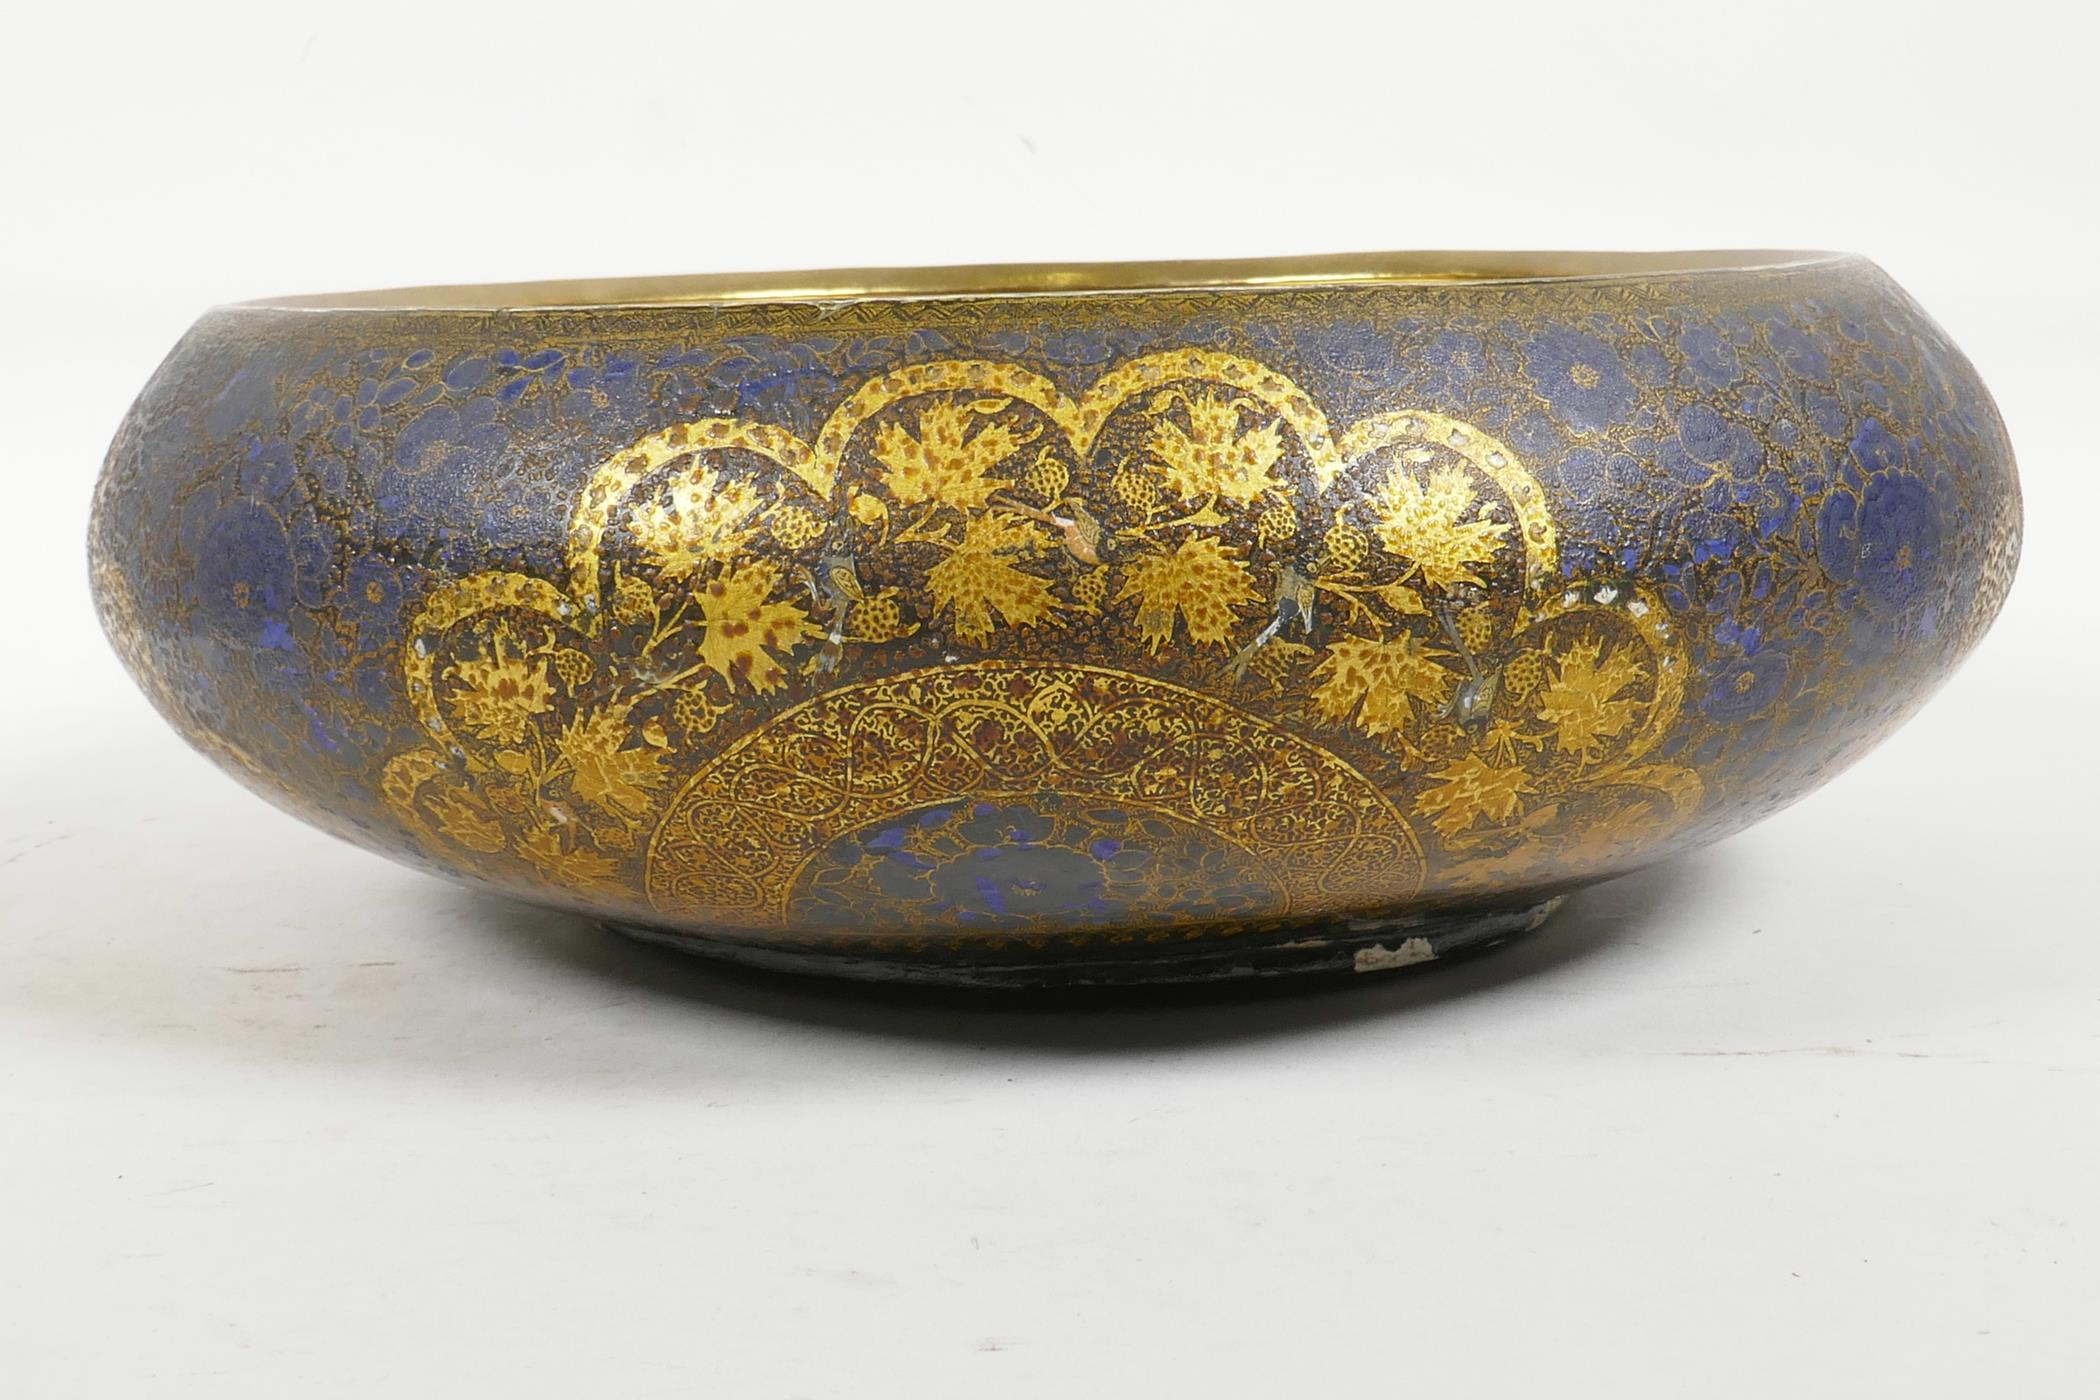 Lot 26 - A Kashmiri brass and lacquer bowl with a rolled rim, decorated with gilt floral patterns, signed